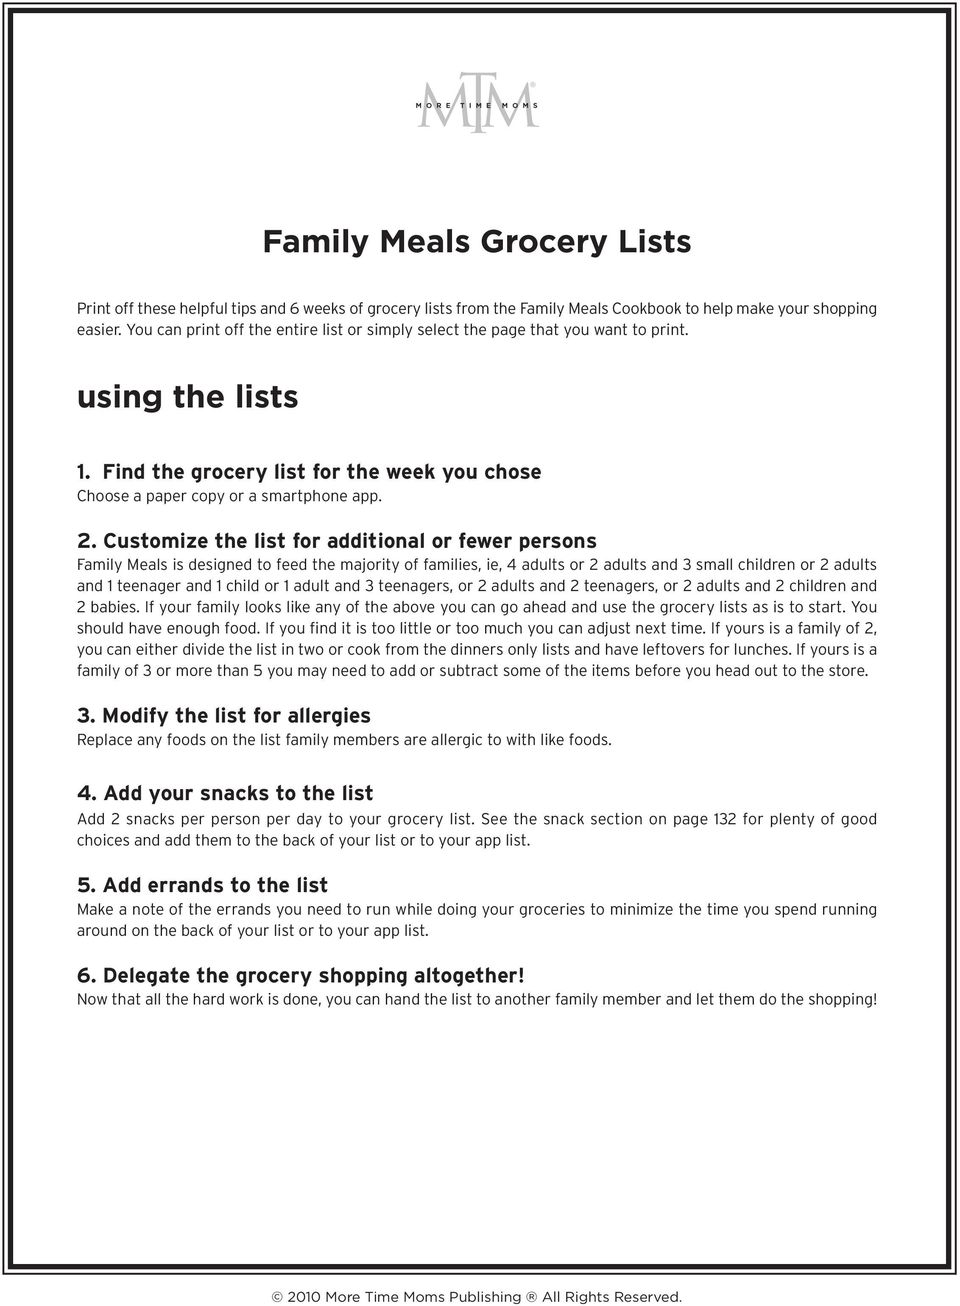 Customize the list for additional or fewer persons Family Meals is designed to feed the majority of families, ie, 4 adults or 2 adults and 3 small children or 2 adults and 1 teenager and 1 child or 1